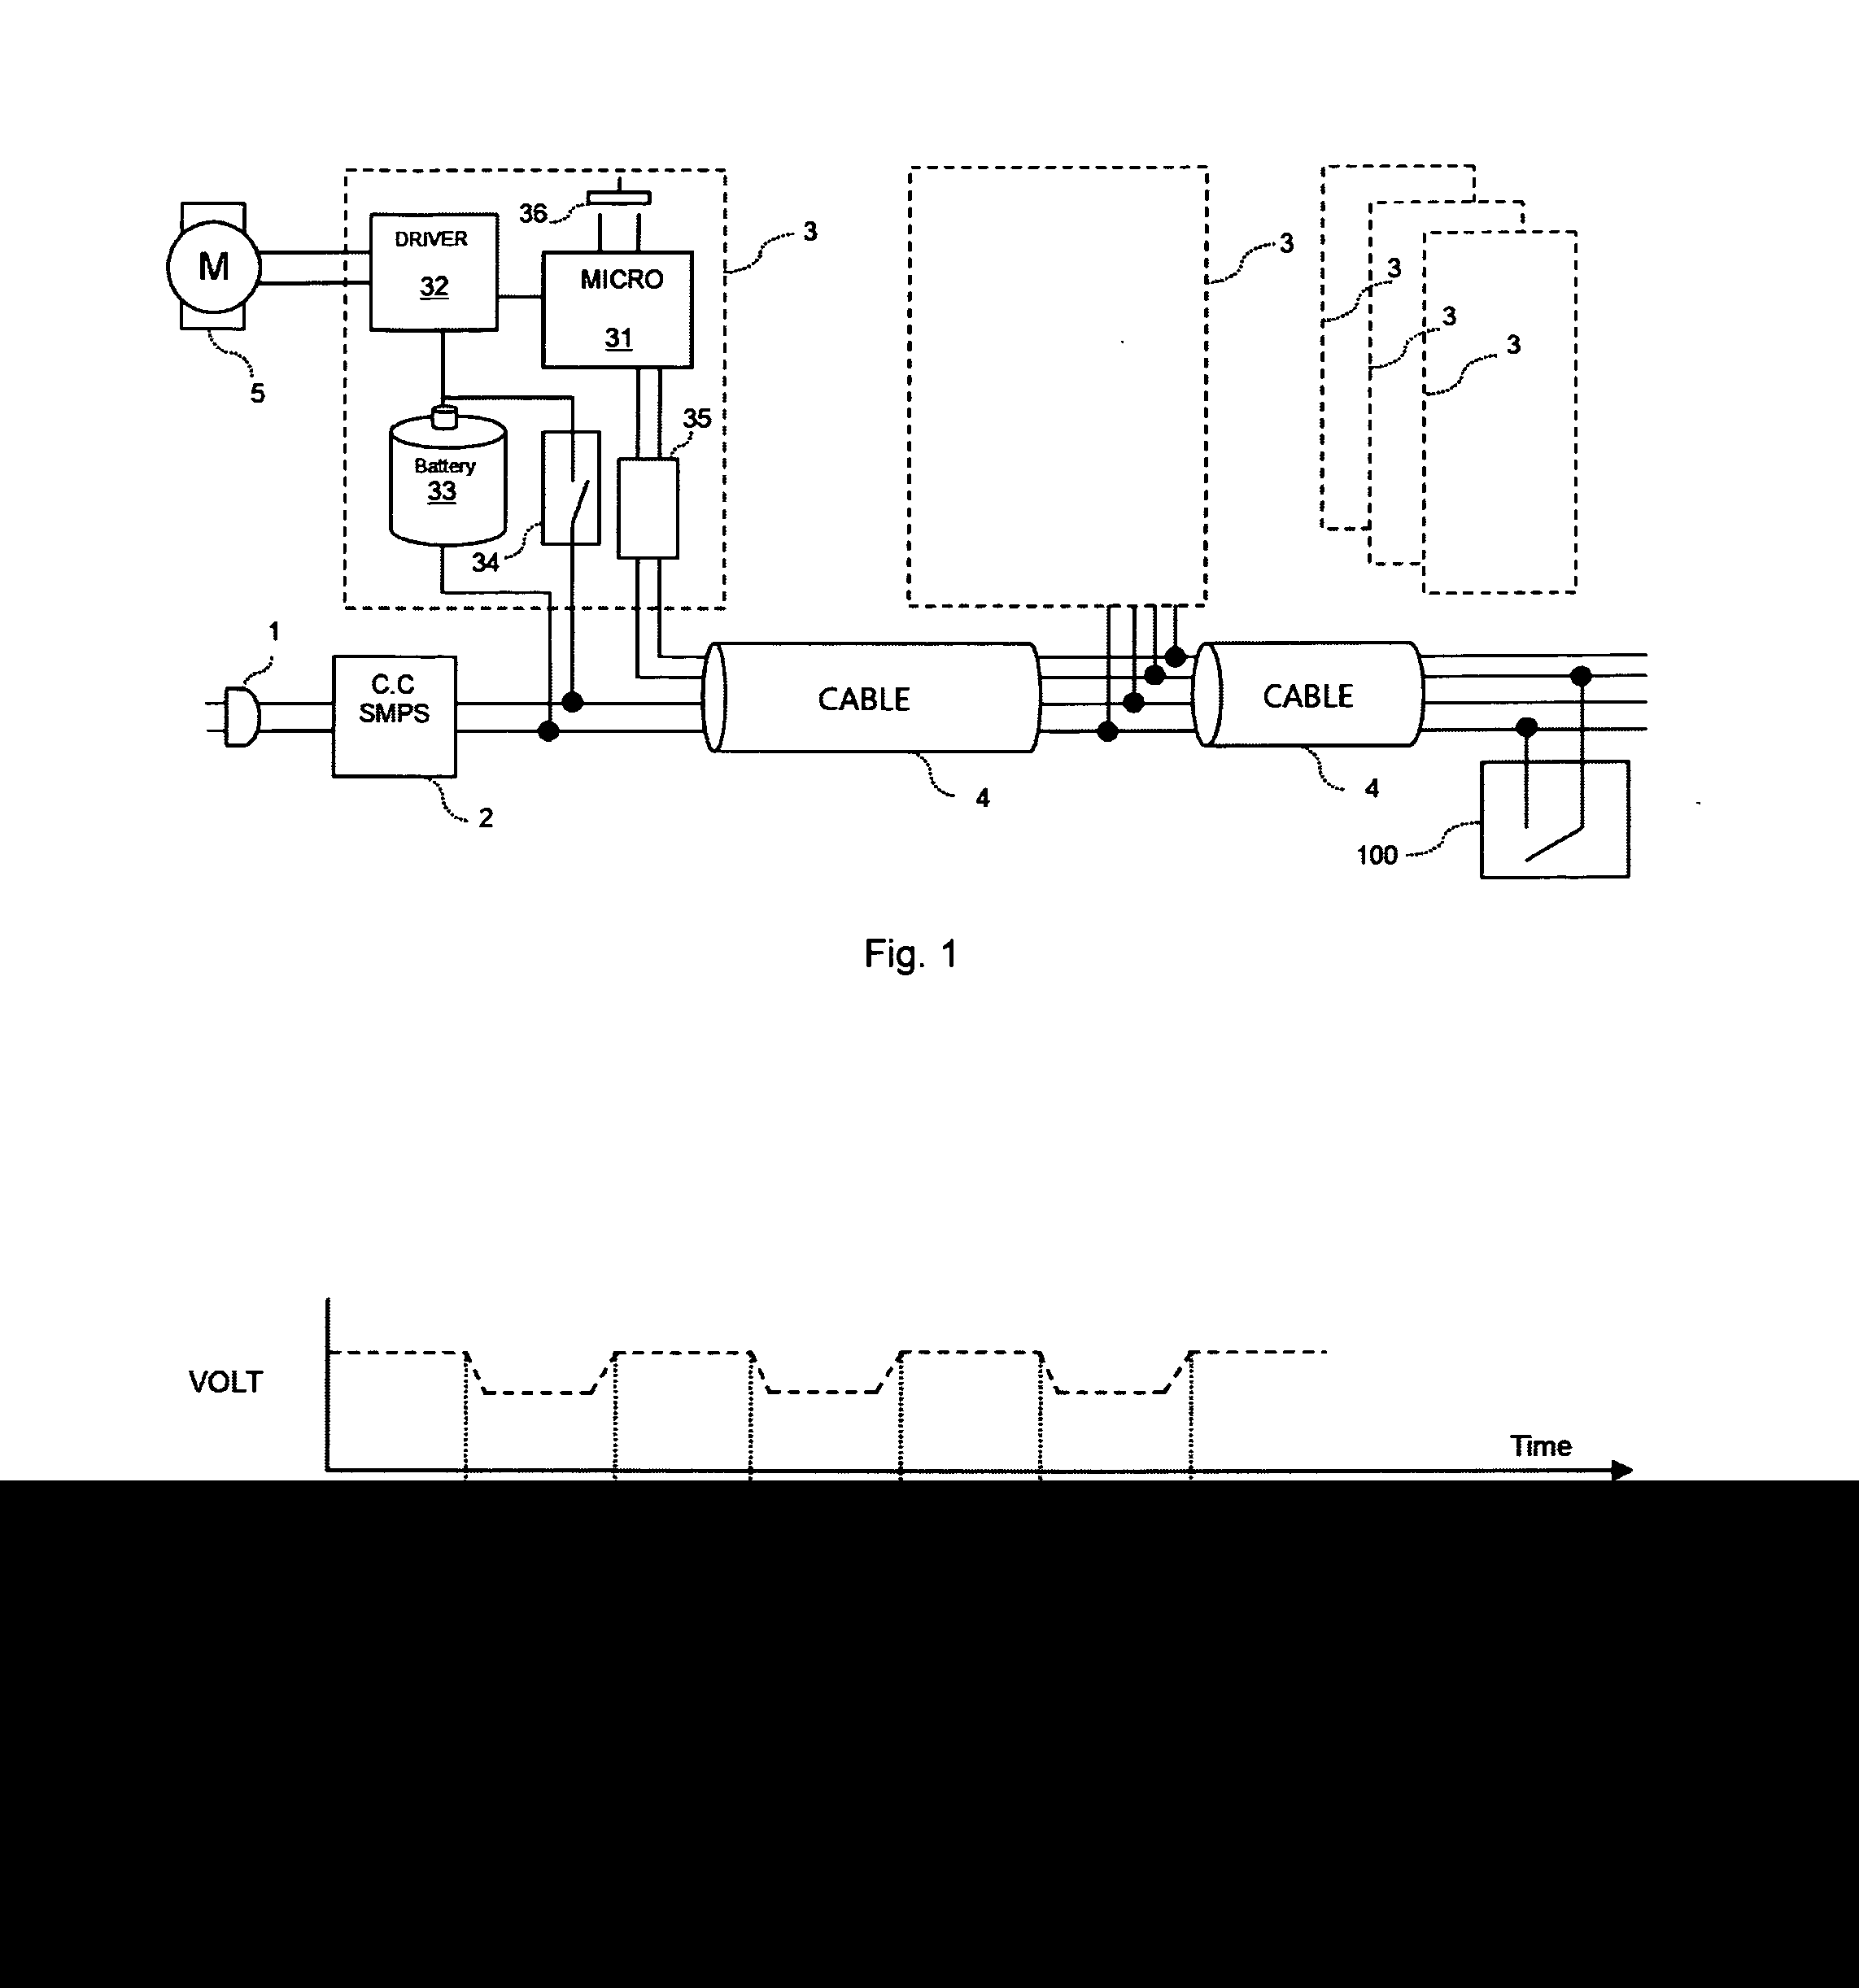 US20140352896A1 20141204 D00001 patent us20140352896 network roller shutters google patents roller shutter motor wiring diagram at alyssarenee.co